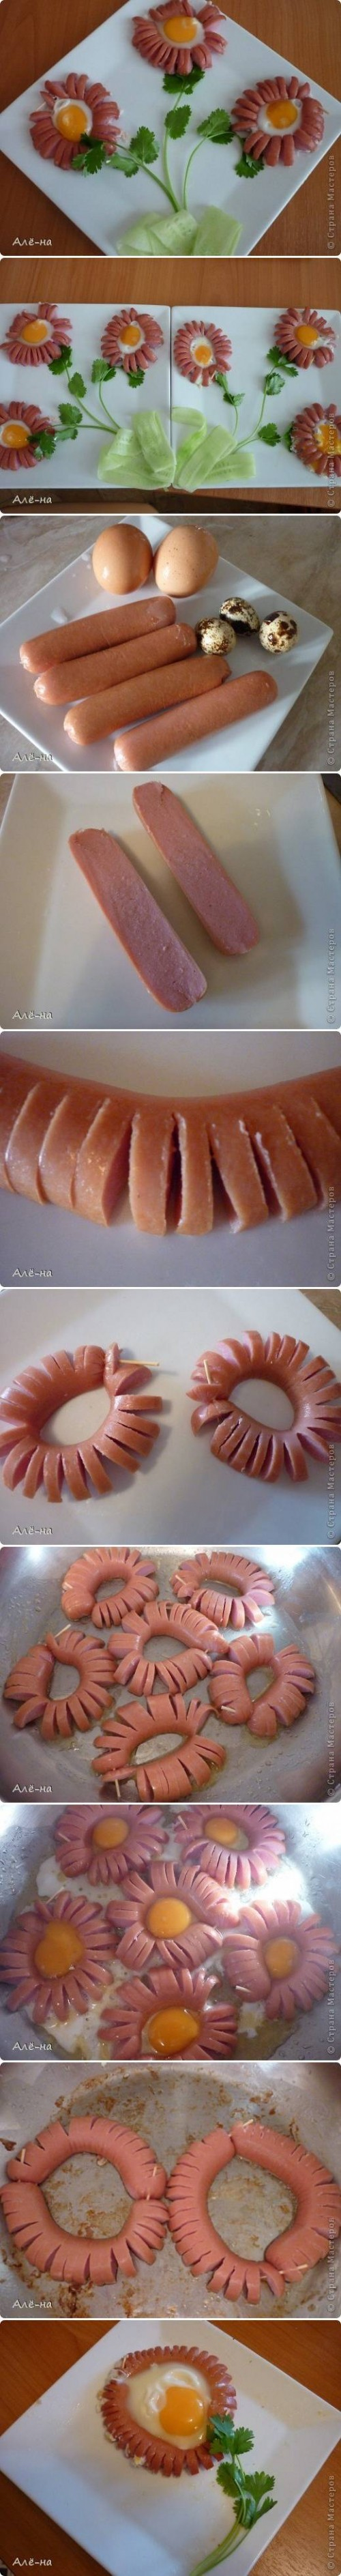 How to Make Hot Dog Daisy step by step DIY tutorial instructions